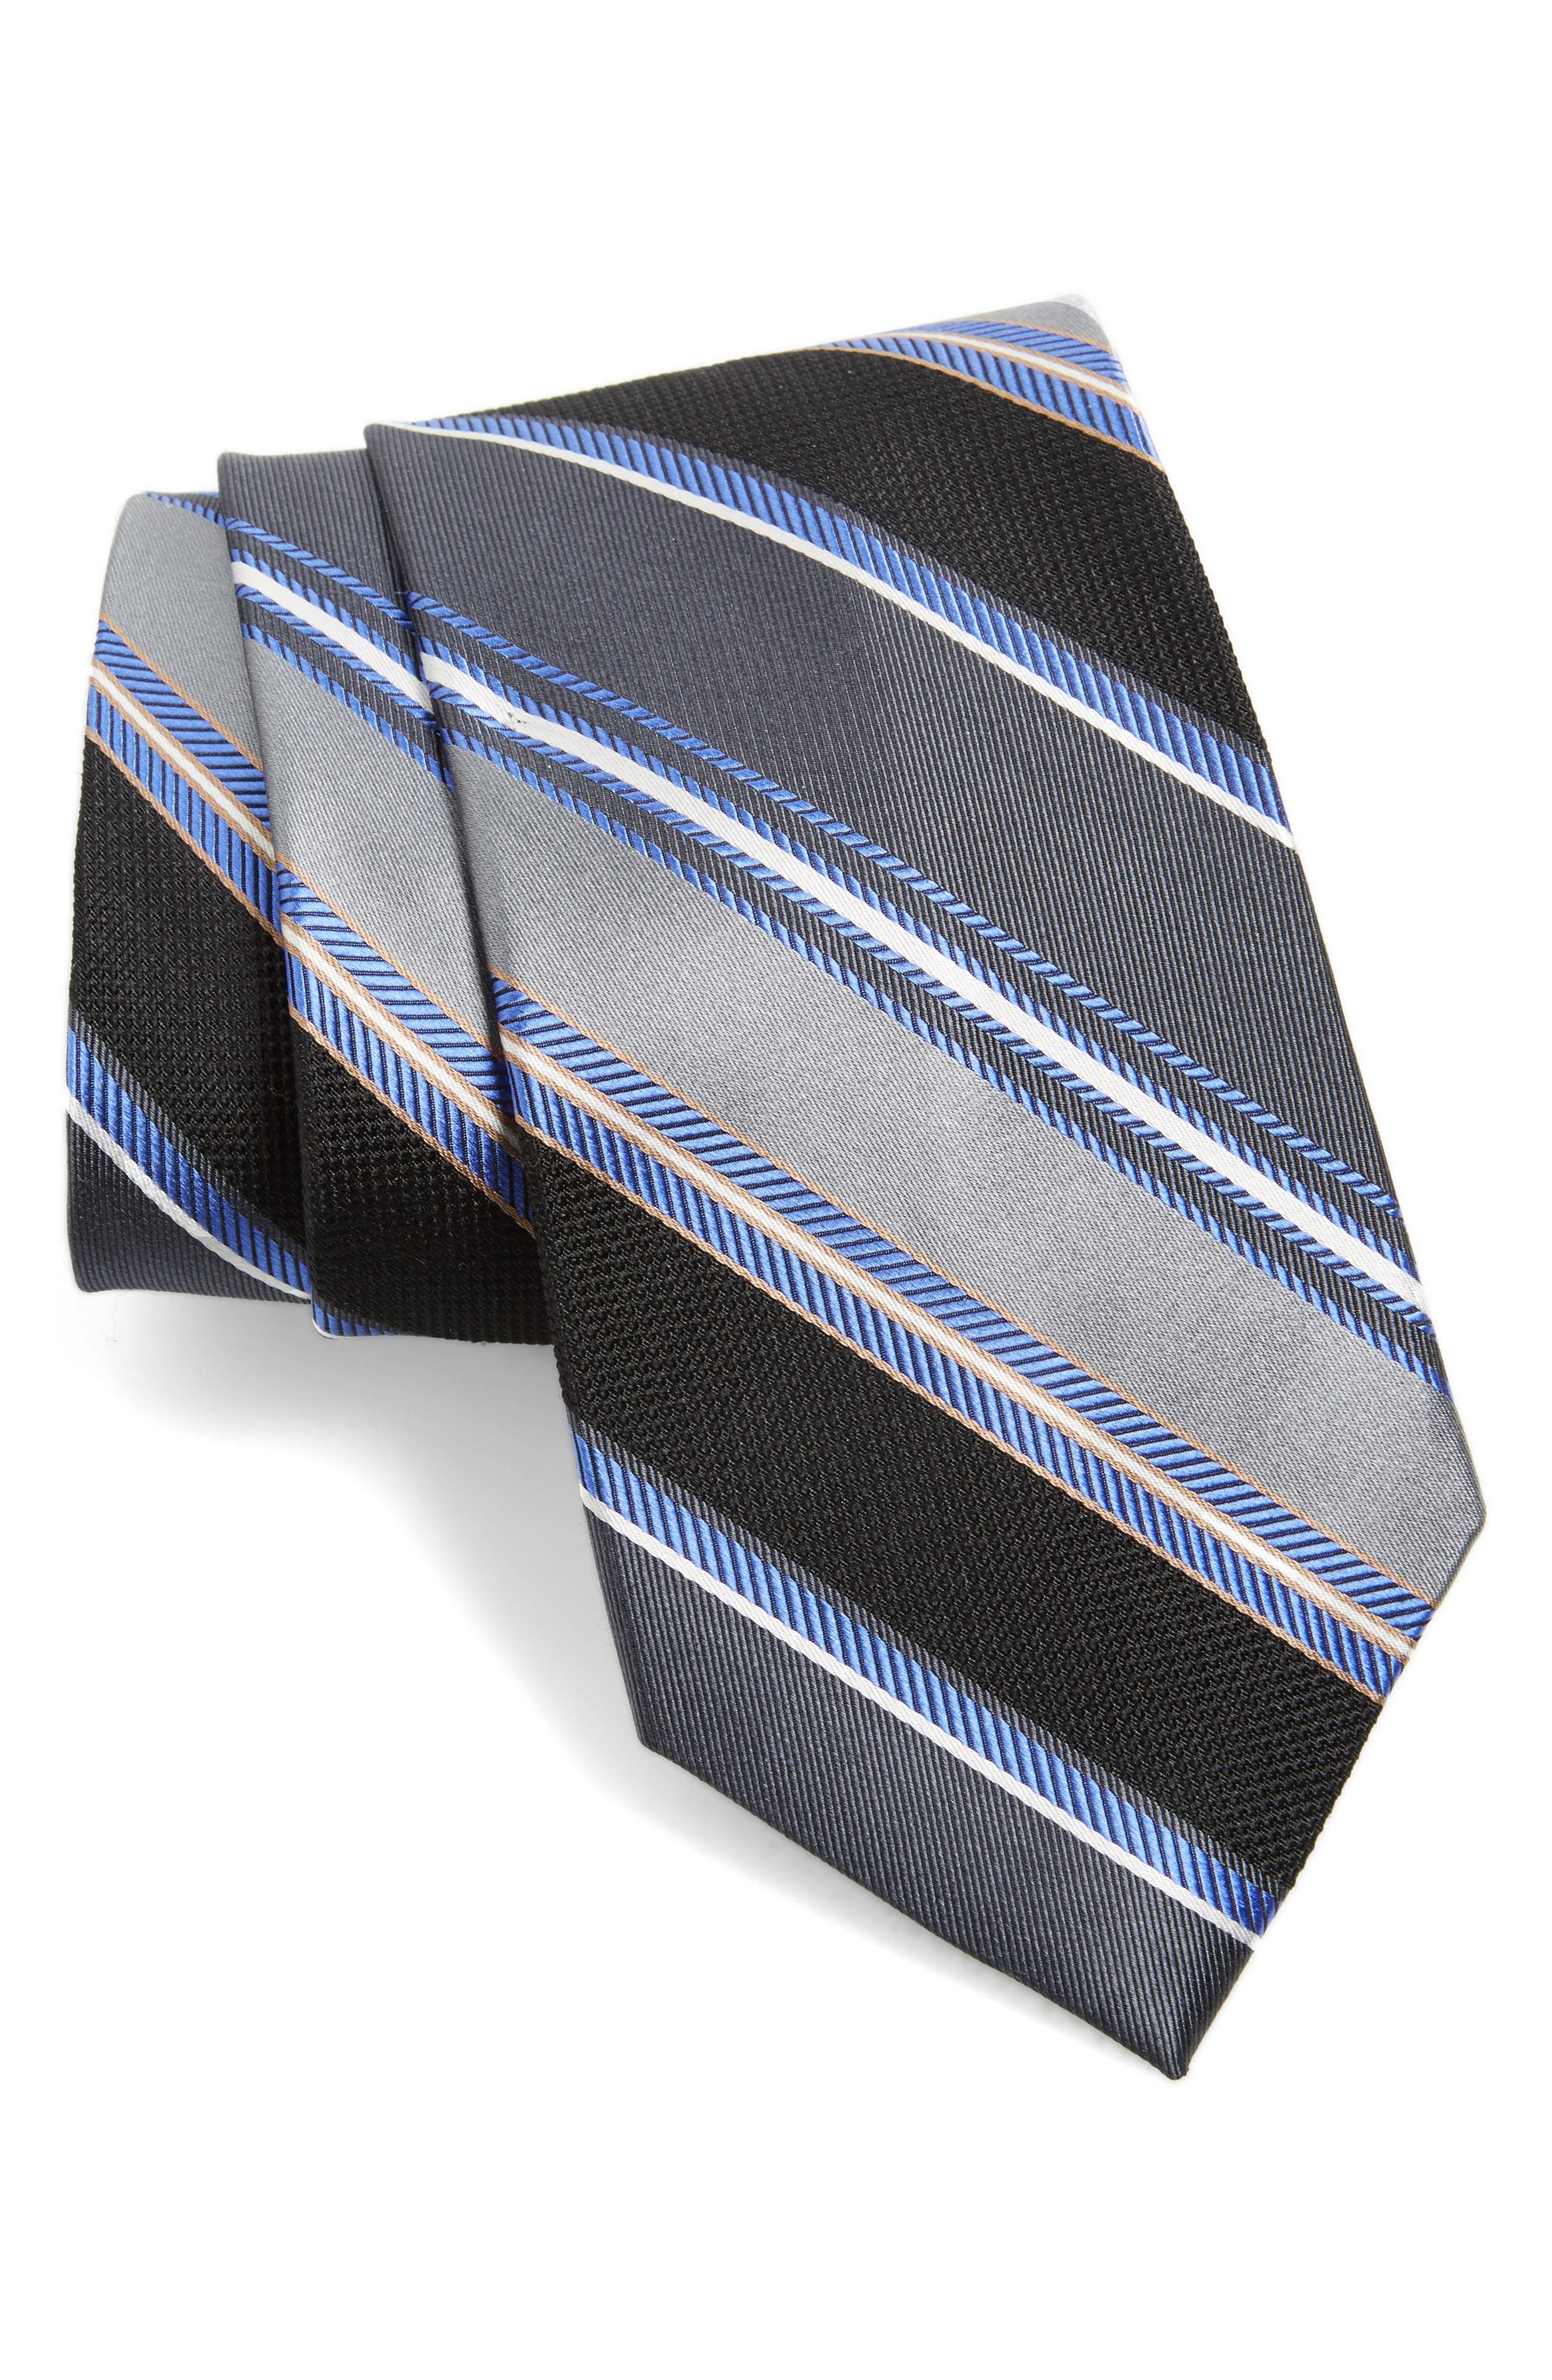 Alternate Image 1 Selected - Nordstrom Men's Shop Regal Stripe Silk Tie (X-Long)